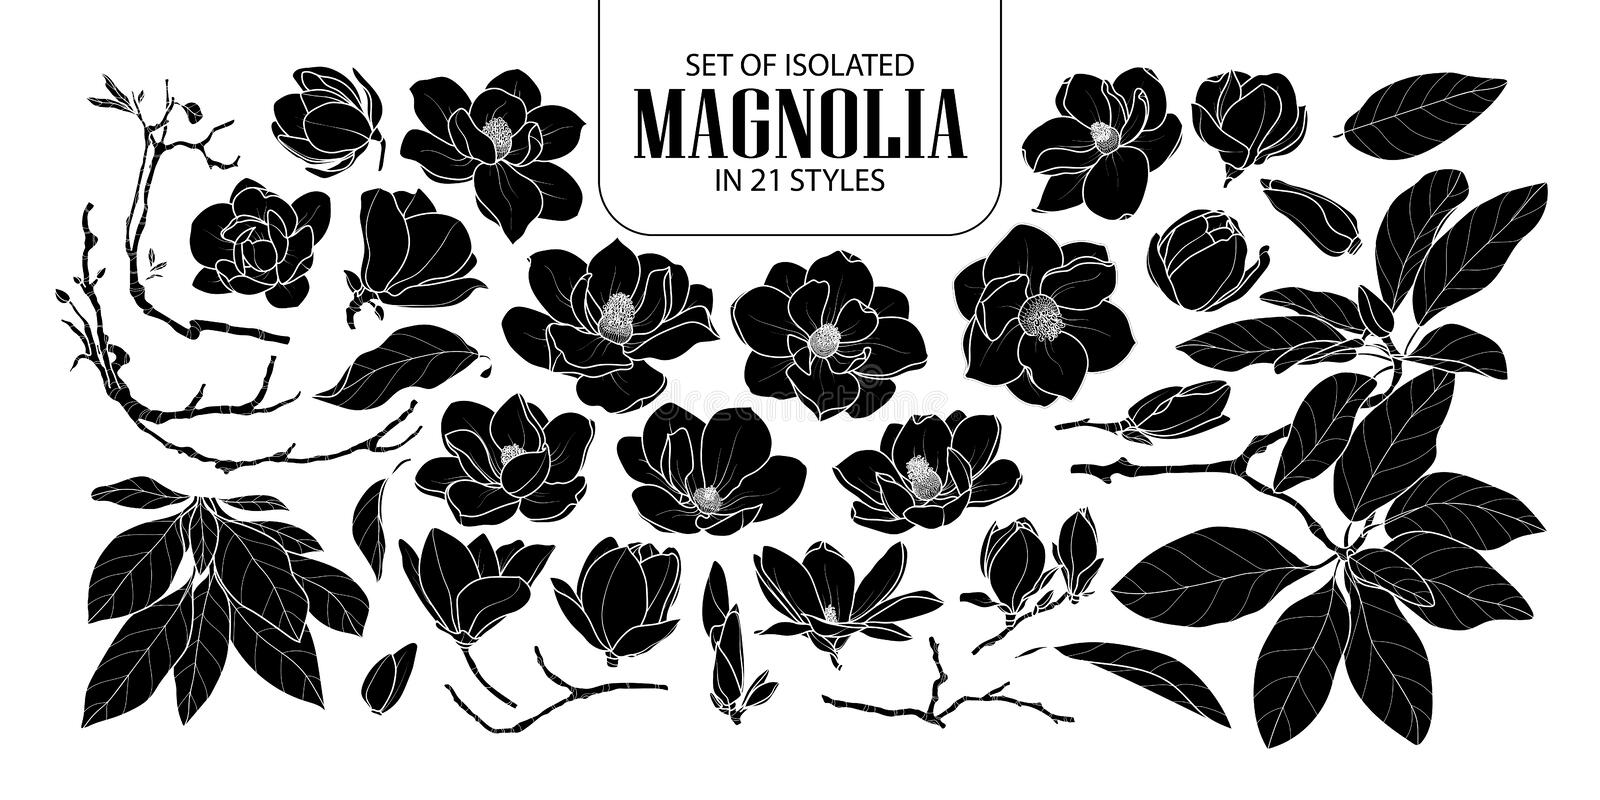 Set of isolated silhouette magnolia in 21 styles. Cute hand drawn flower vector illustration in white outline and black plane. royalty free illustration